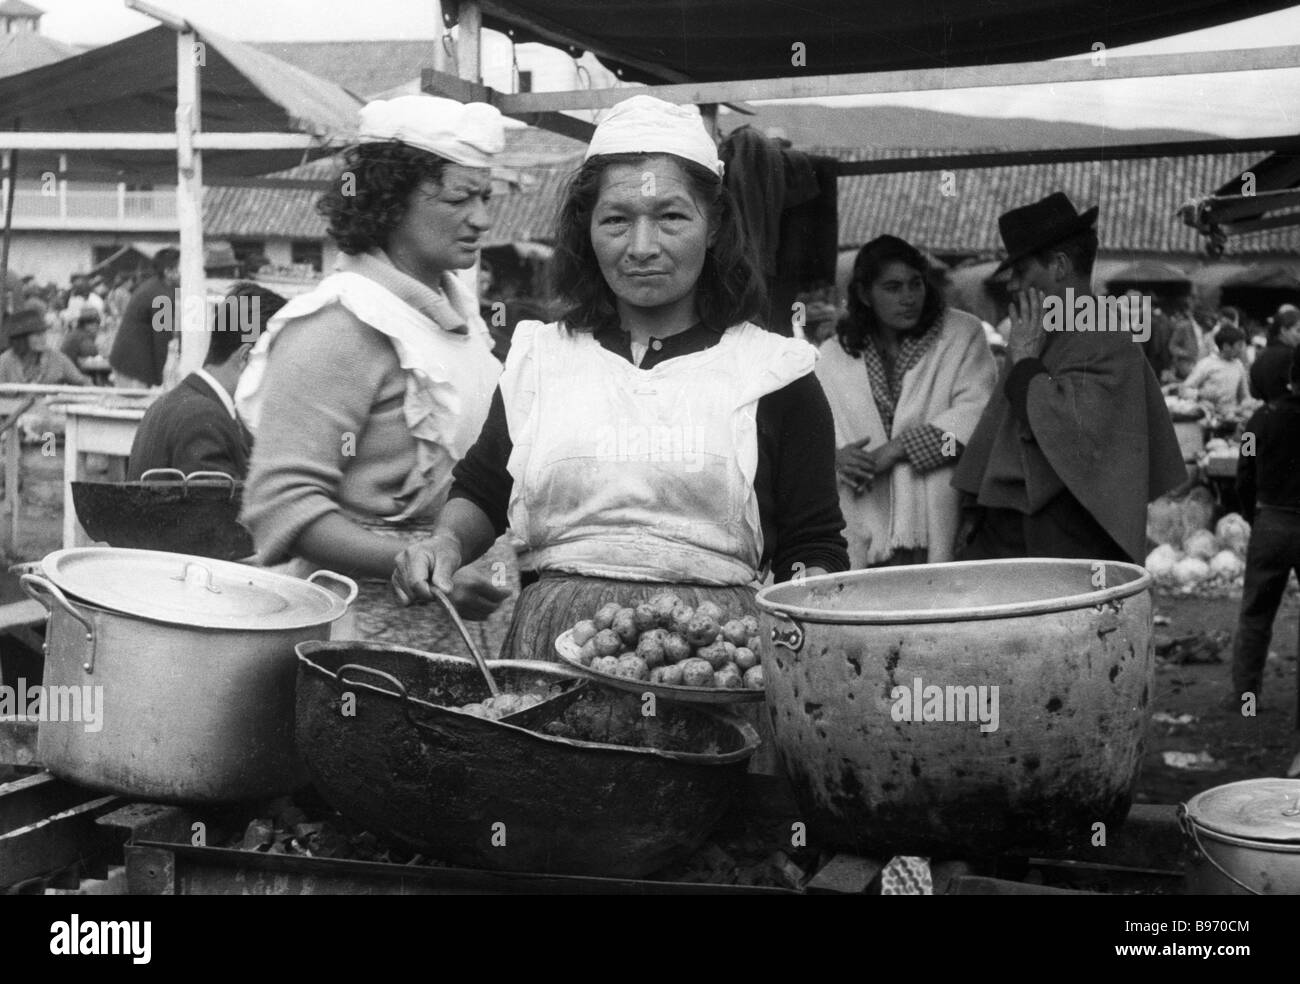 A market woman plying her wares - Stock Image